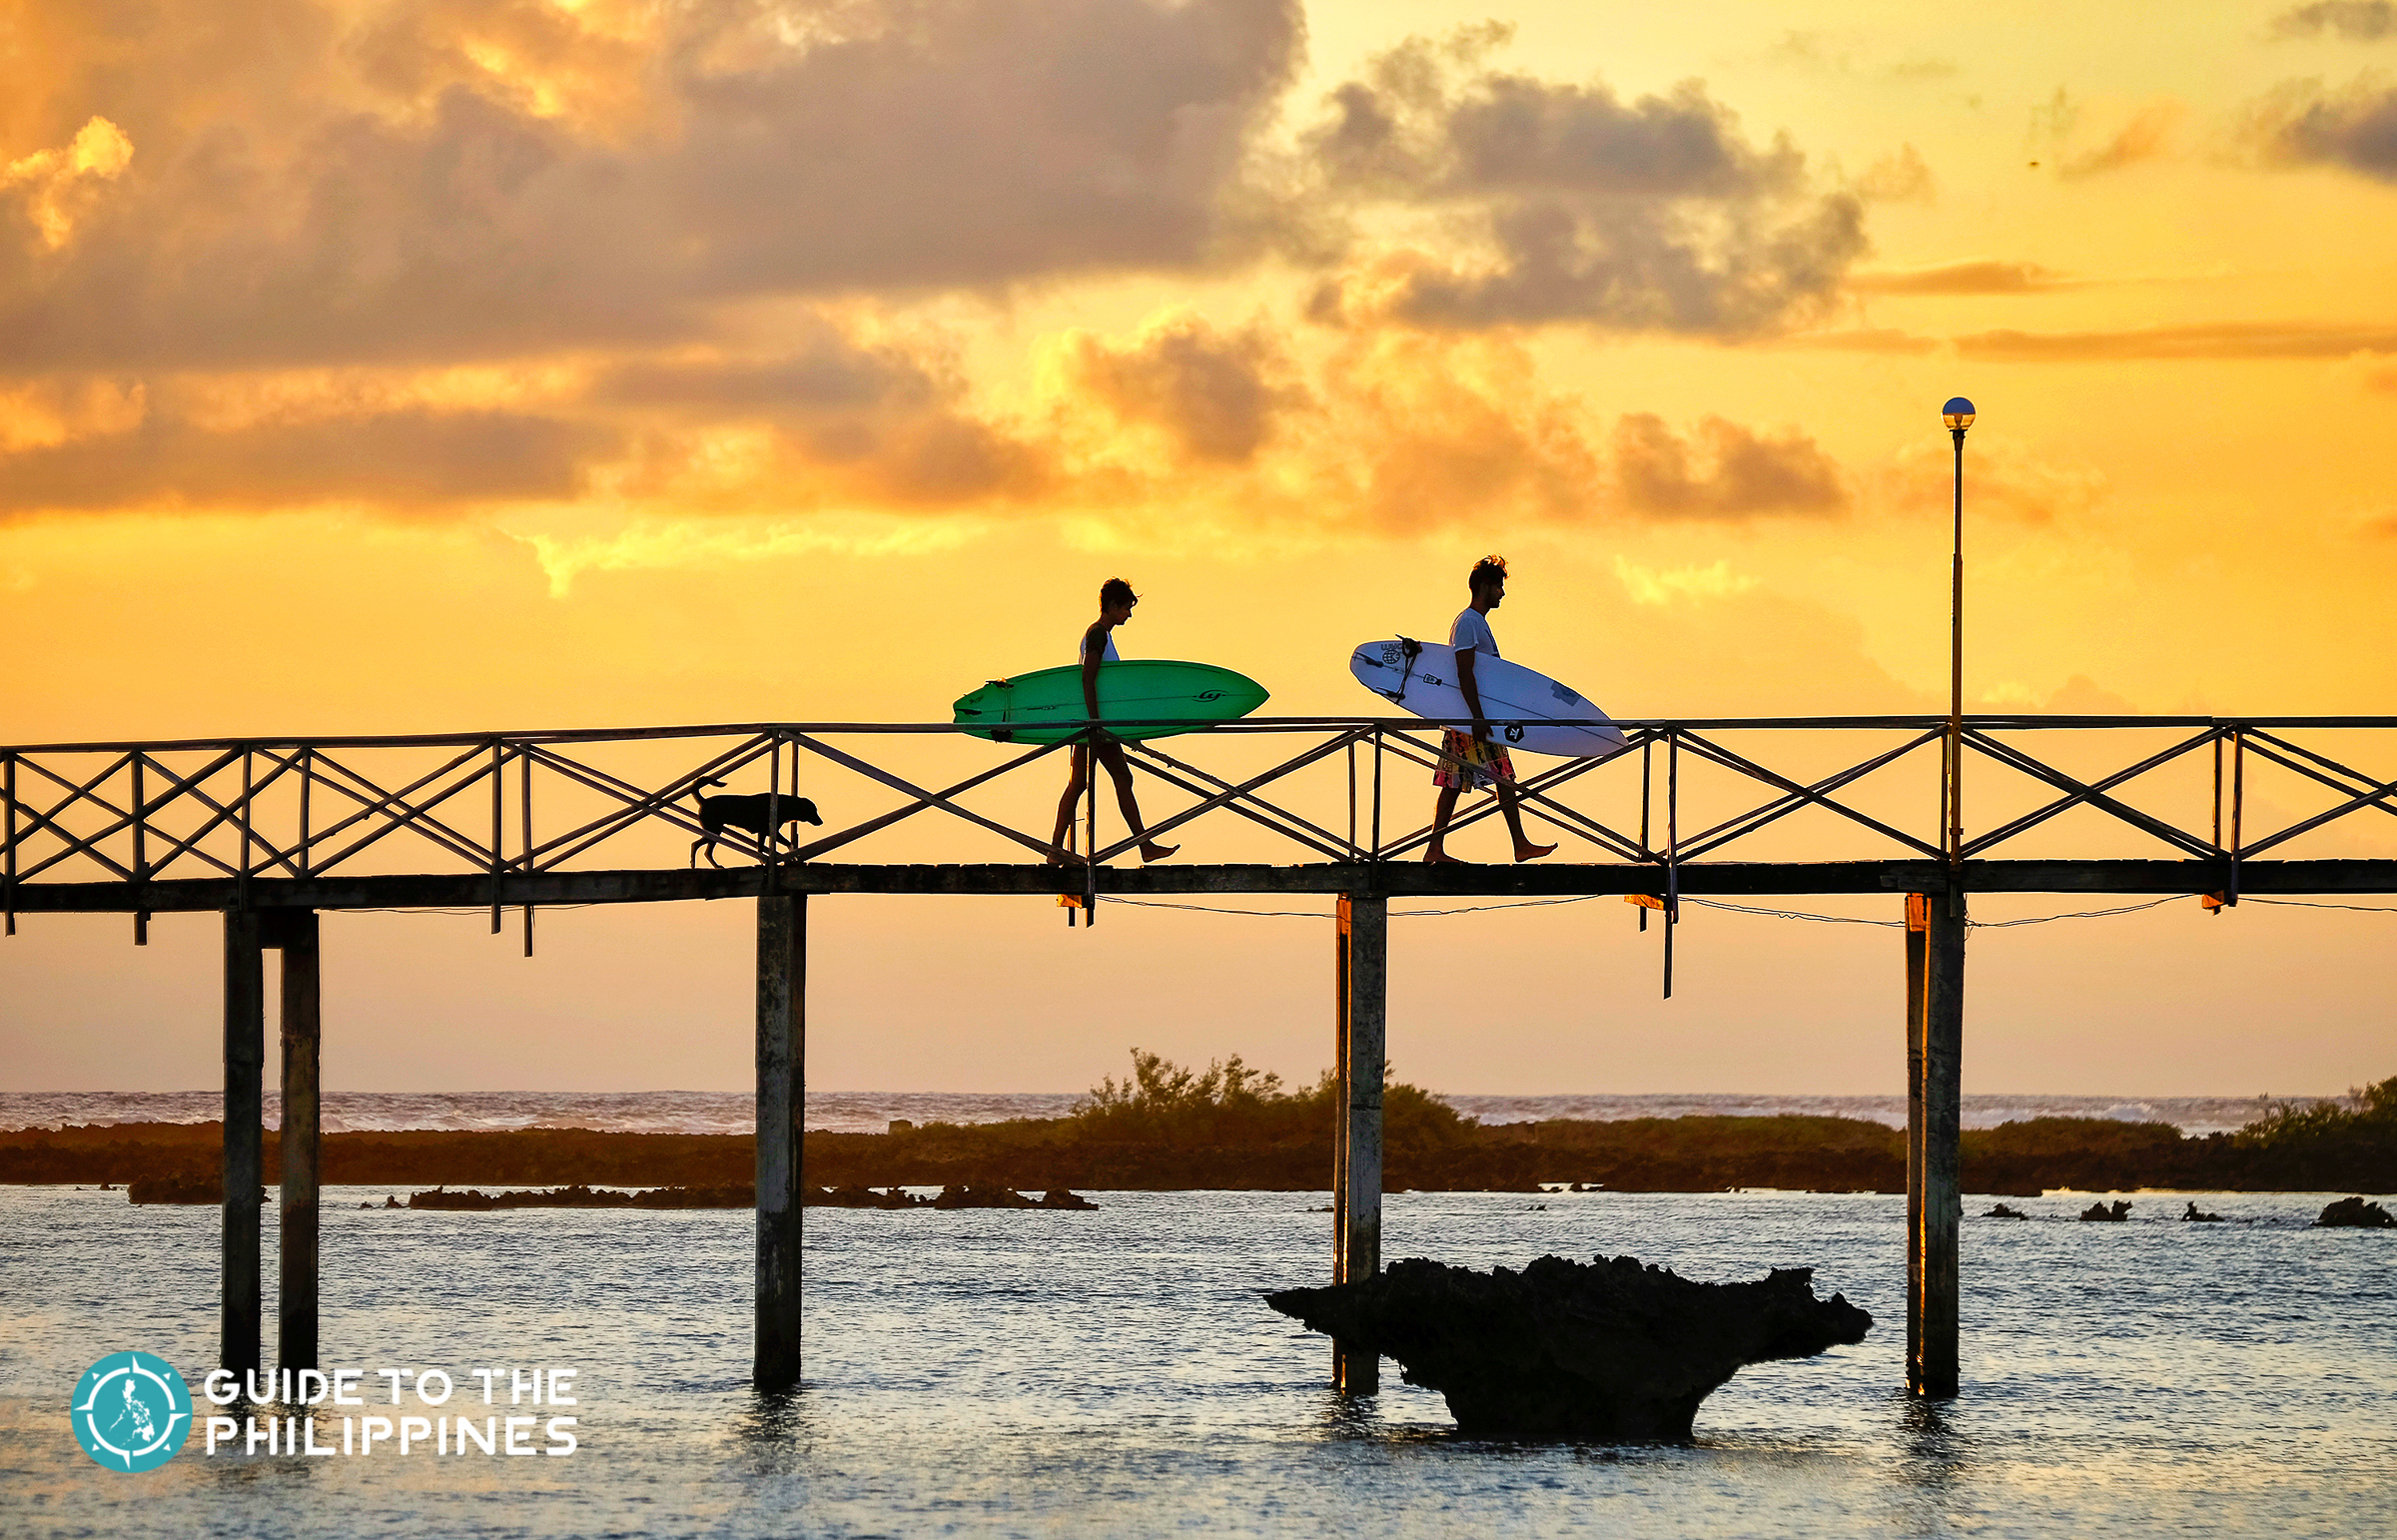 Siargao Island Travel Guide: What to Do + Resorts + COVID-19 Travel Requirements